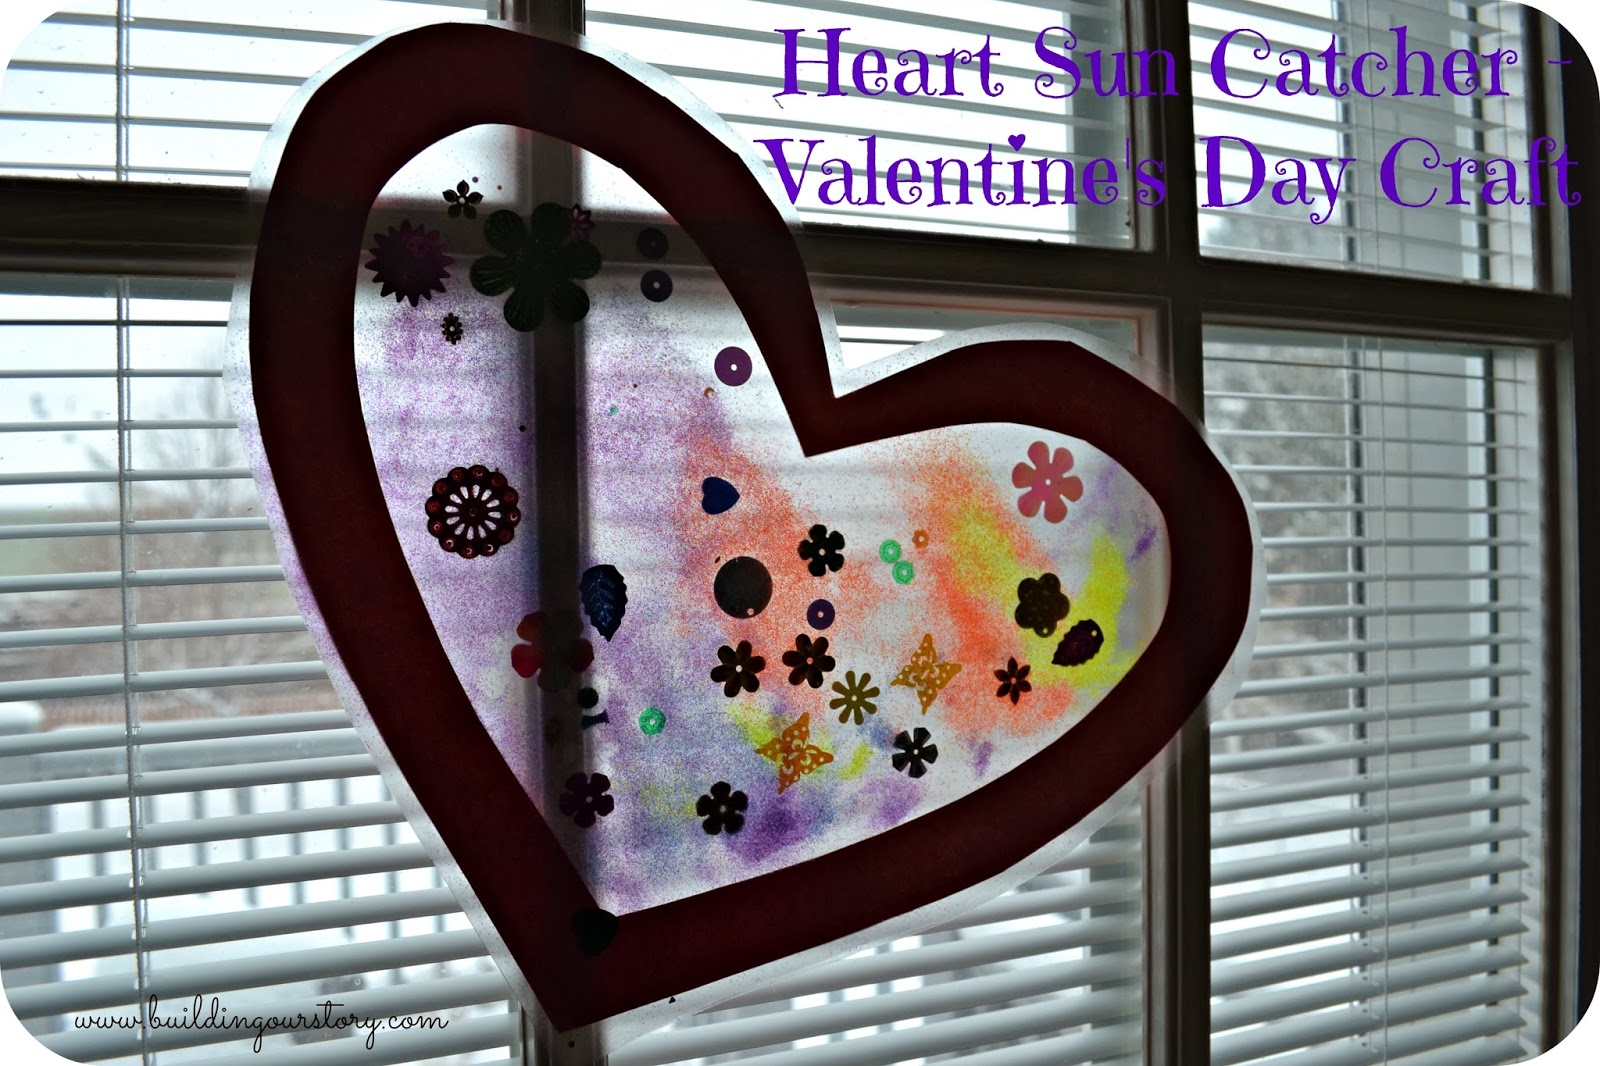 Heart Sun Catcher - Valentine's Day Craft